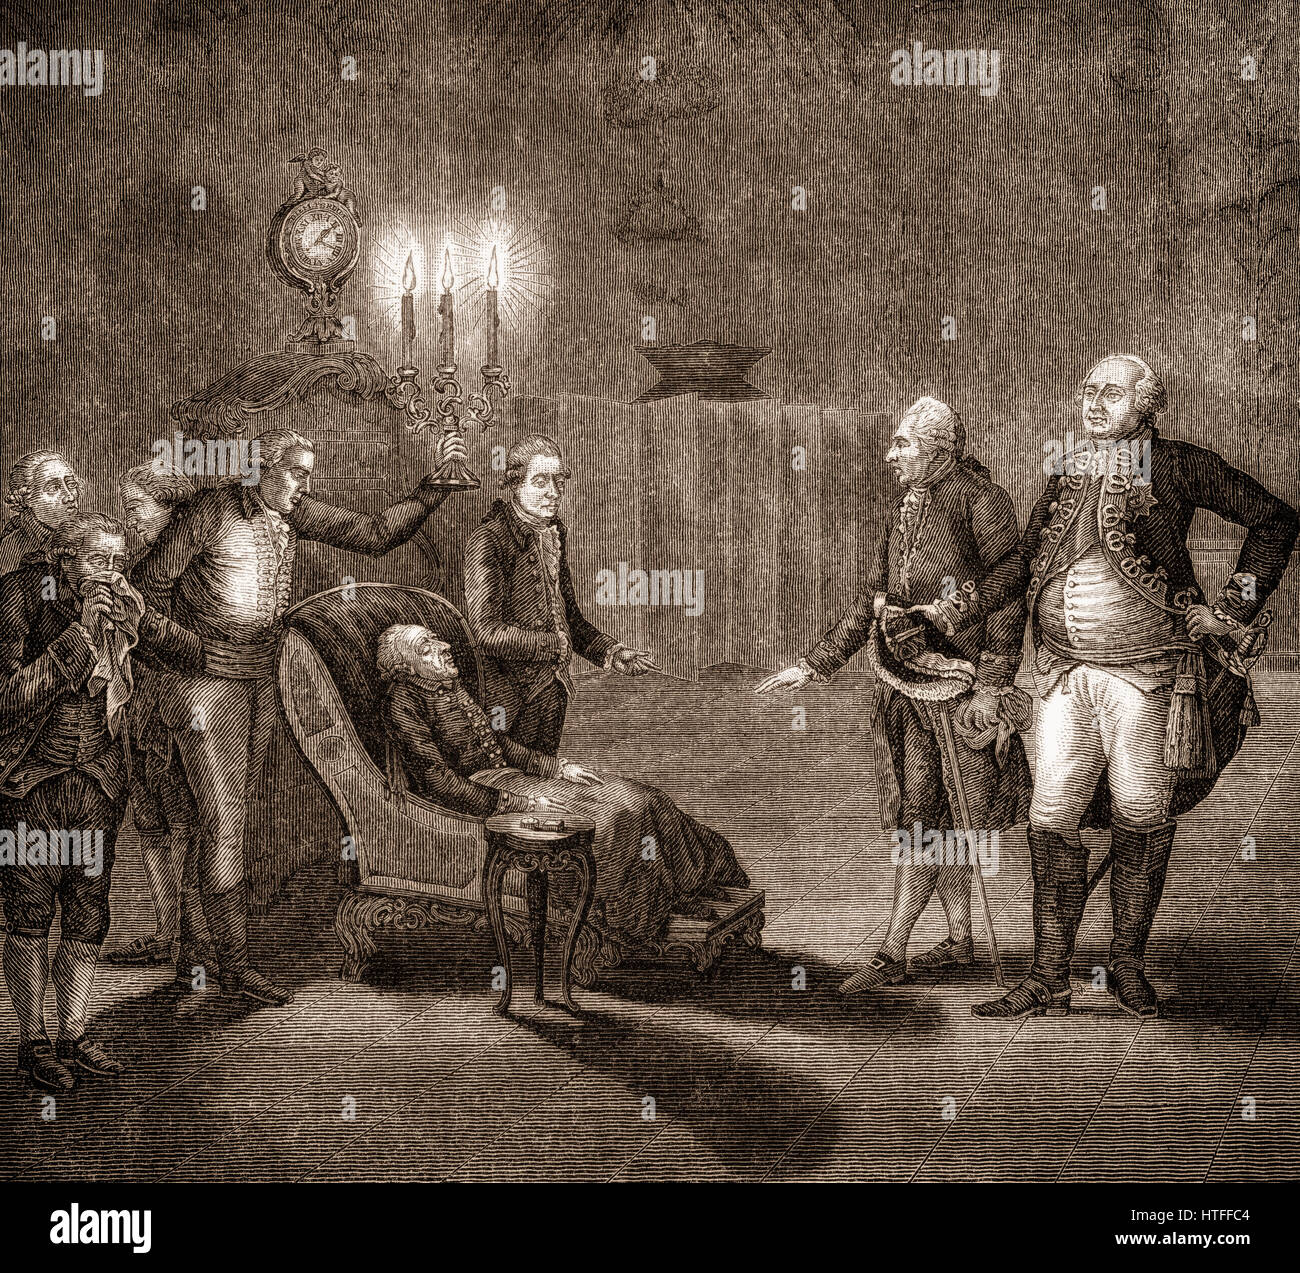 Frederick II or Frederick the Great, 1712-1786, King of Prussia, dying, Sanssouci Palace, Potsdam, Germany - Stock Image